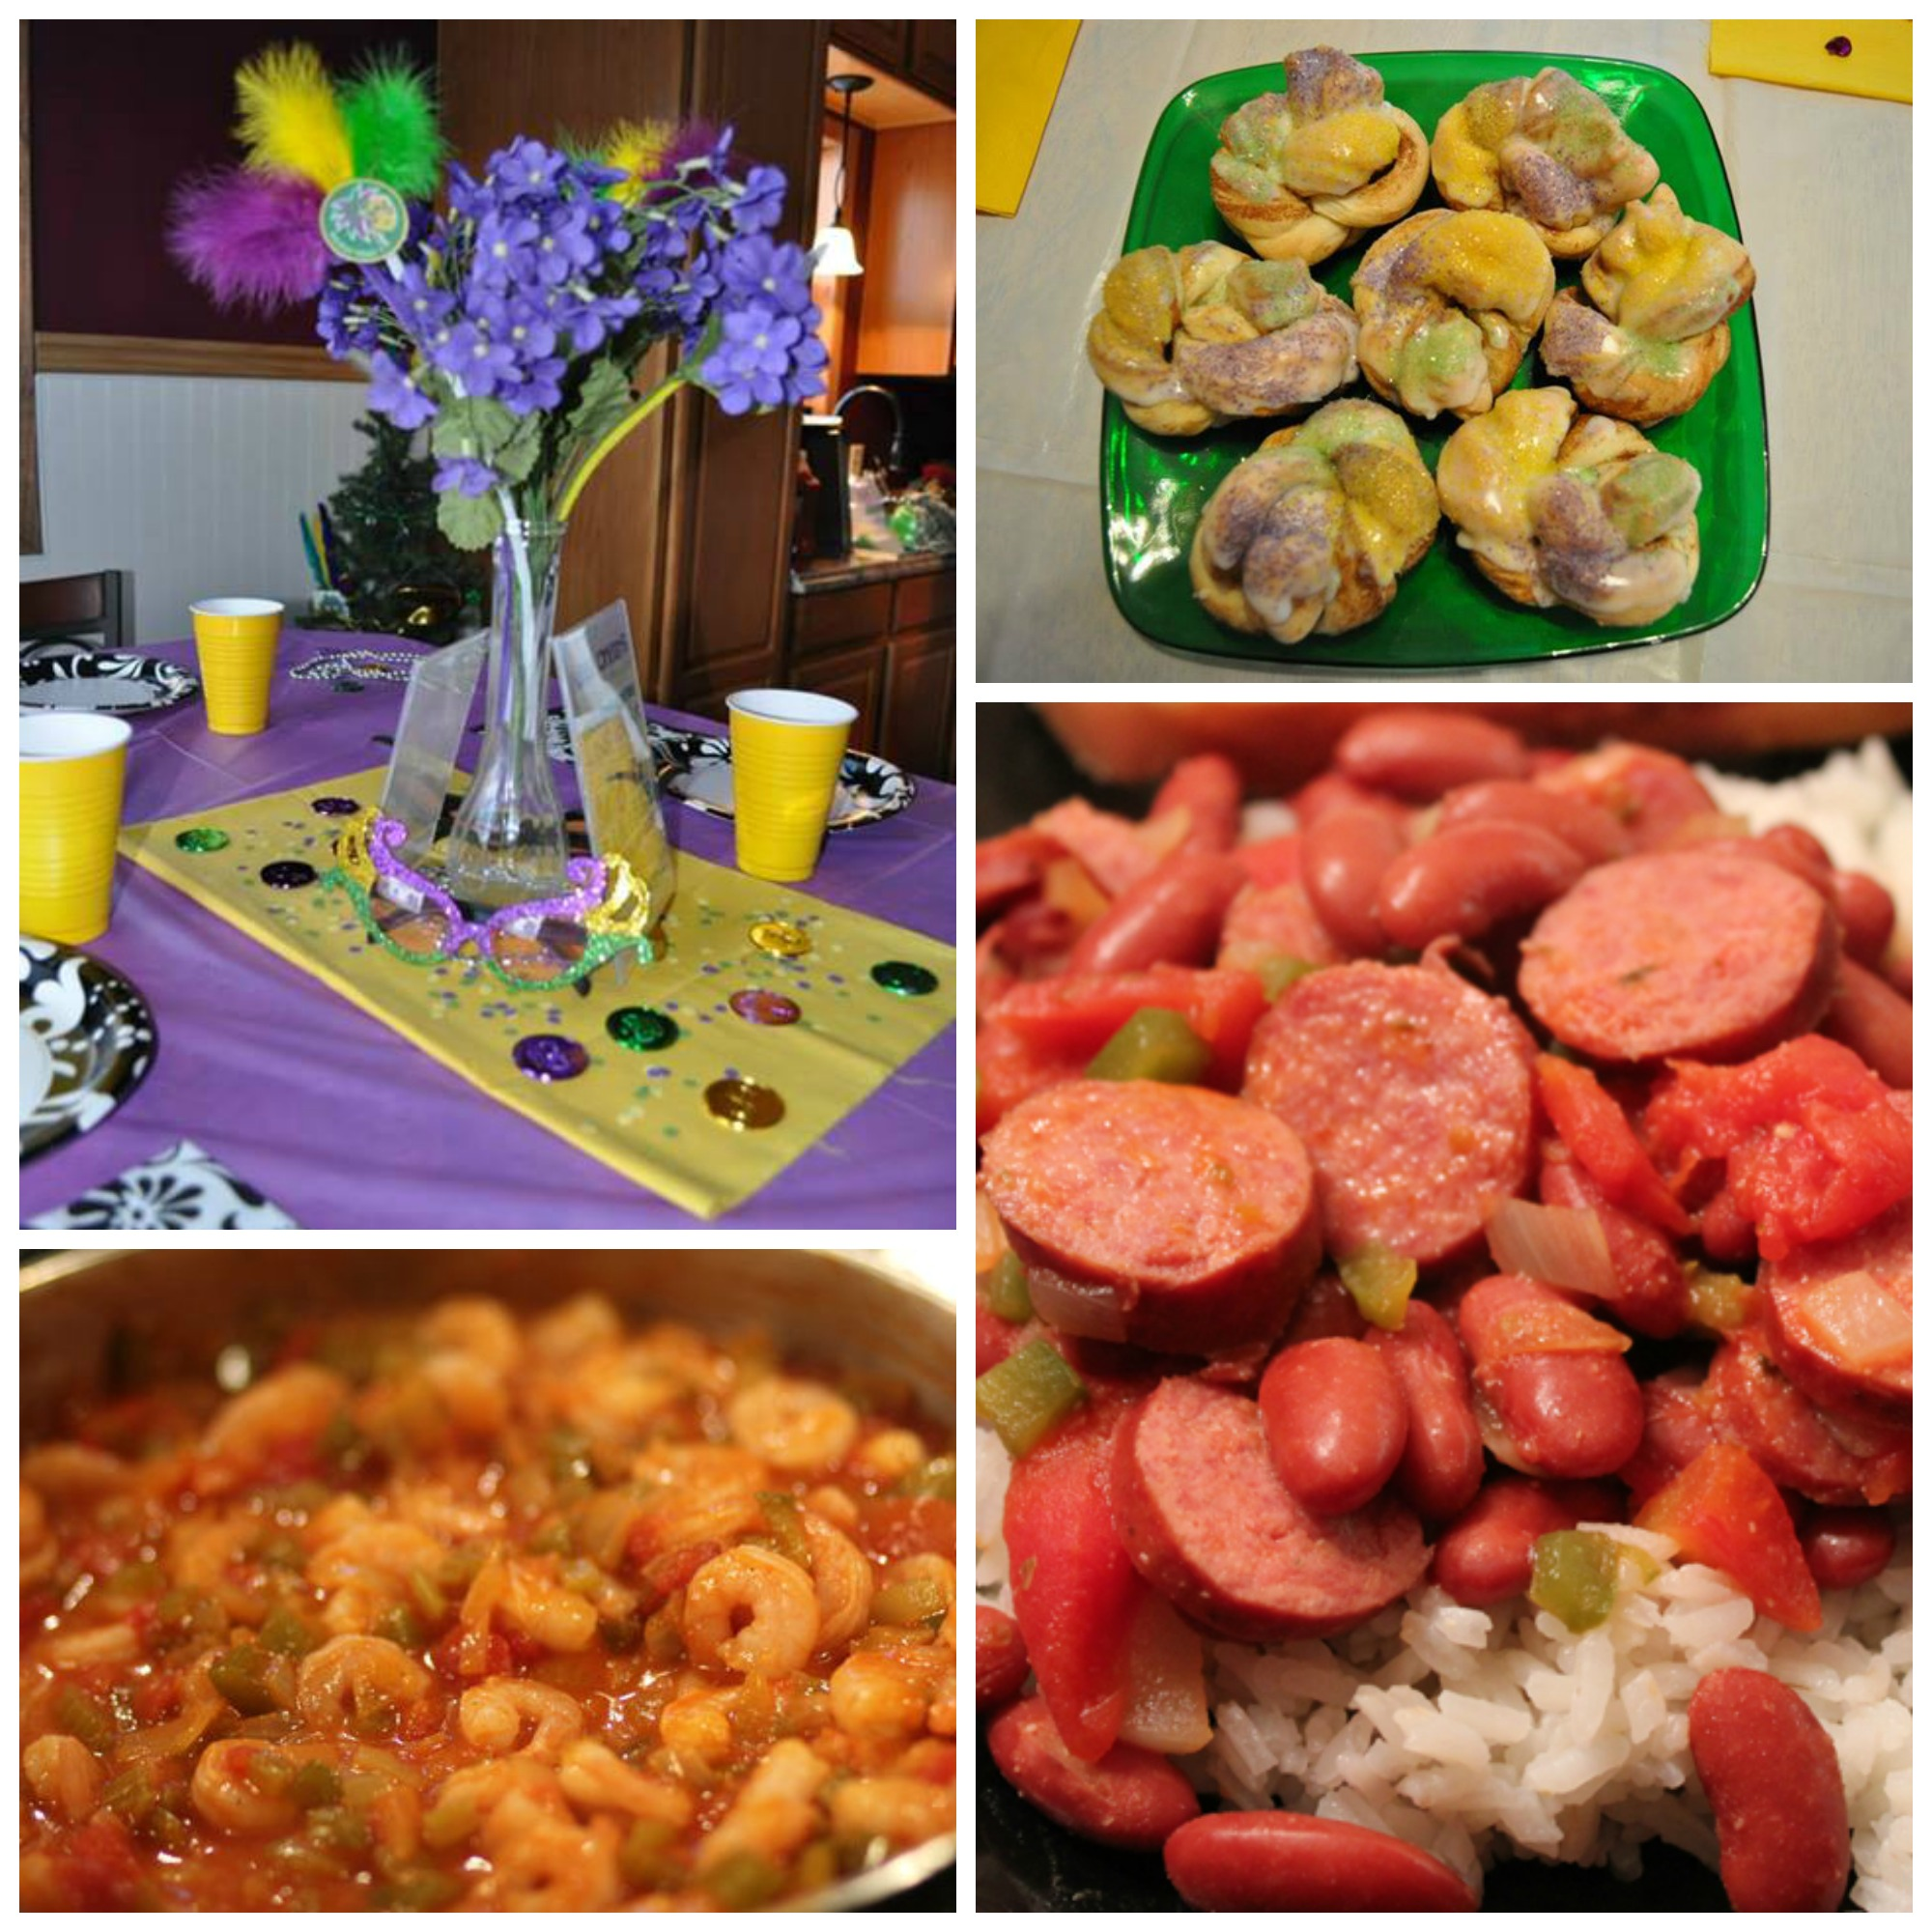 Mardi gras party ideas and recipes mommysavers mommysavers mardi gras party ideas and recipes forumfinder Image collections